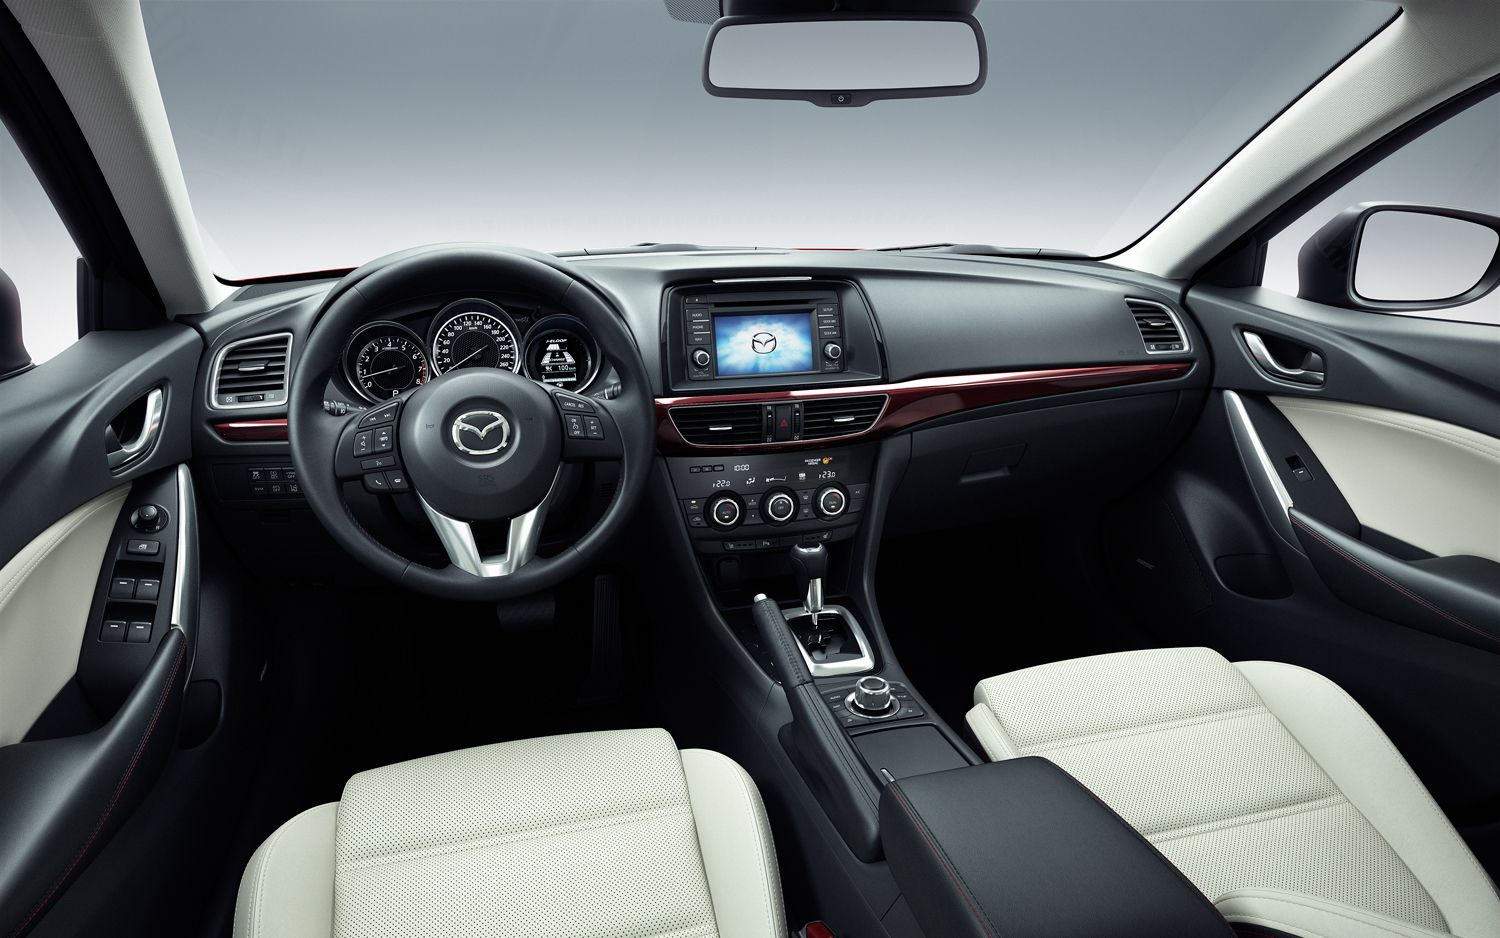 Mazda6 Interior named in Wards Auto\'s Top 10 for this year. | Mazda ...